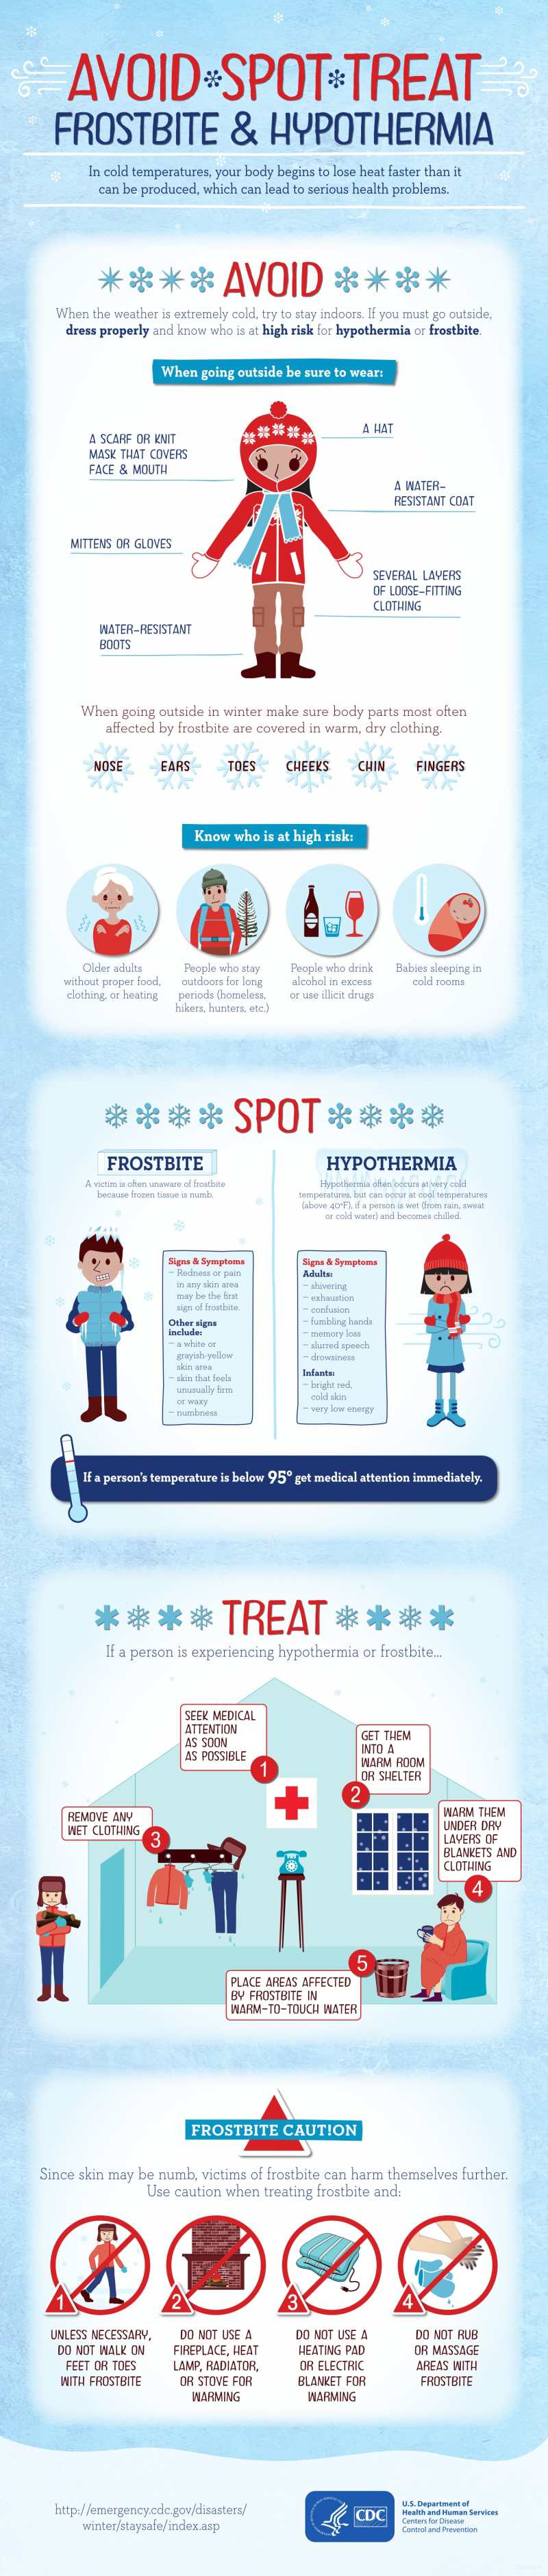 Infographic:   Avoid | Spot | Treat | Hypothermia/frostbite